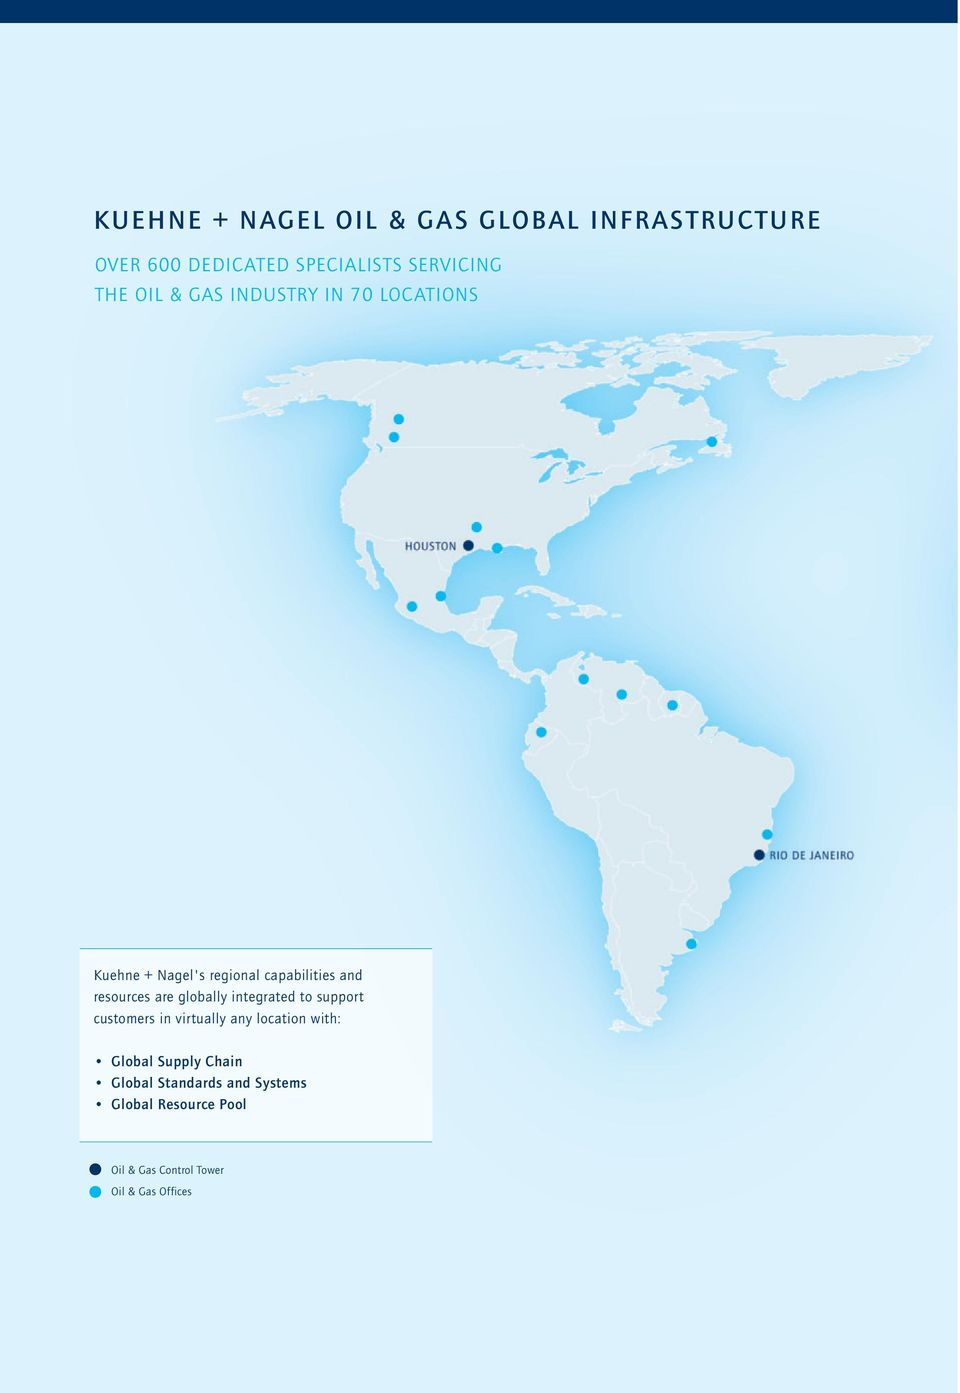 globally integrated to support customers in virtually any location with: Global Supply